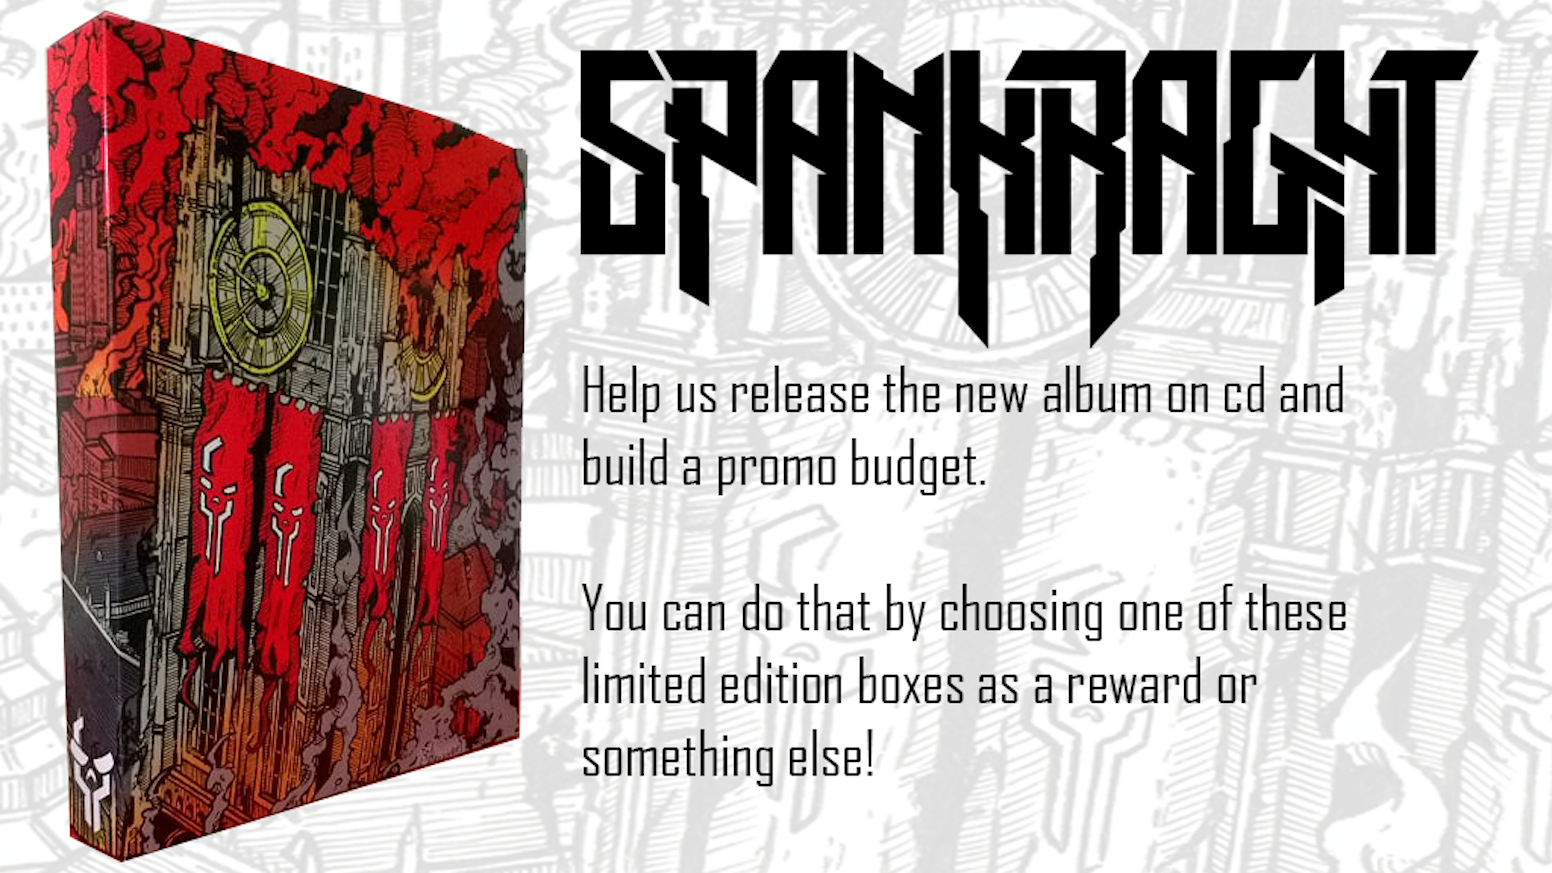 Spankraght's full album in badass packaging! With your help, we did it!